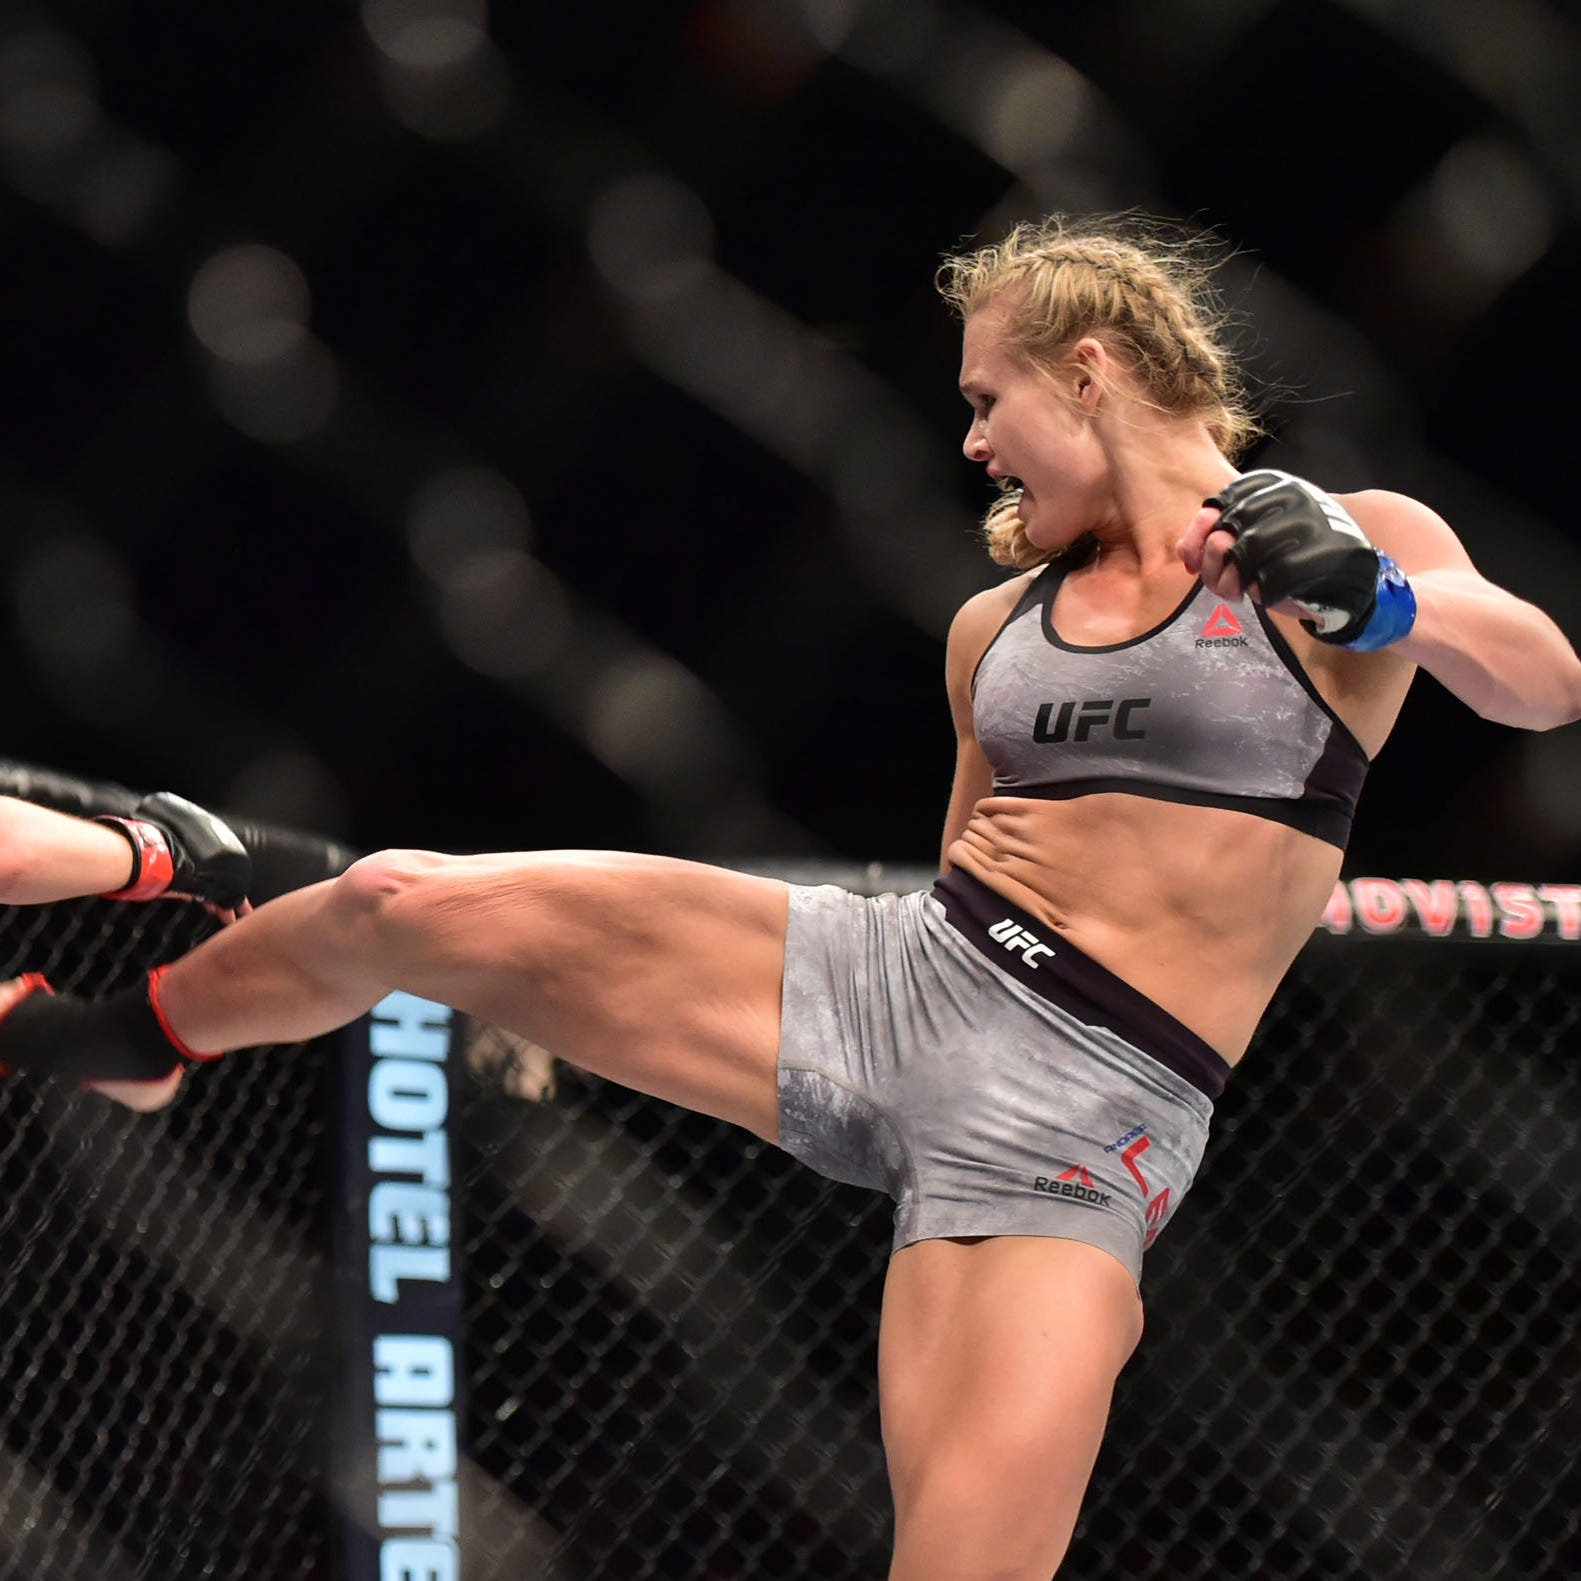 Andrea Lee's year of 'hell' continues as Saturday's UFC bout scrapped